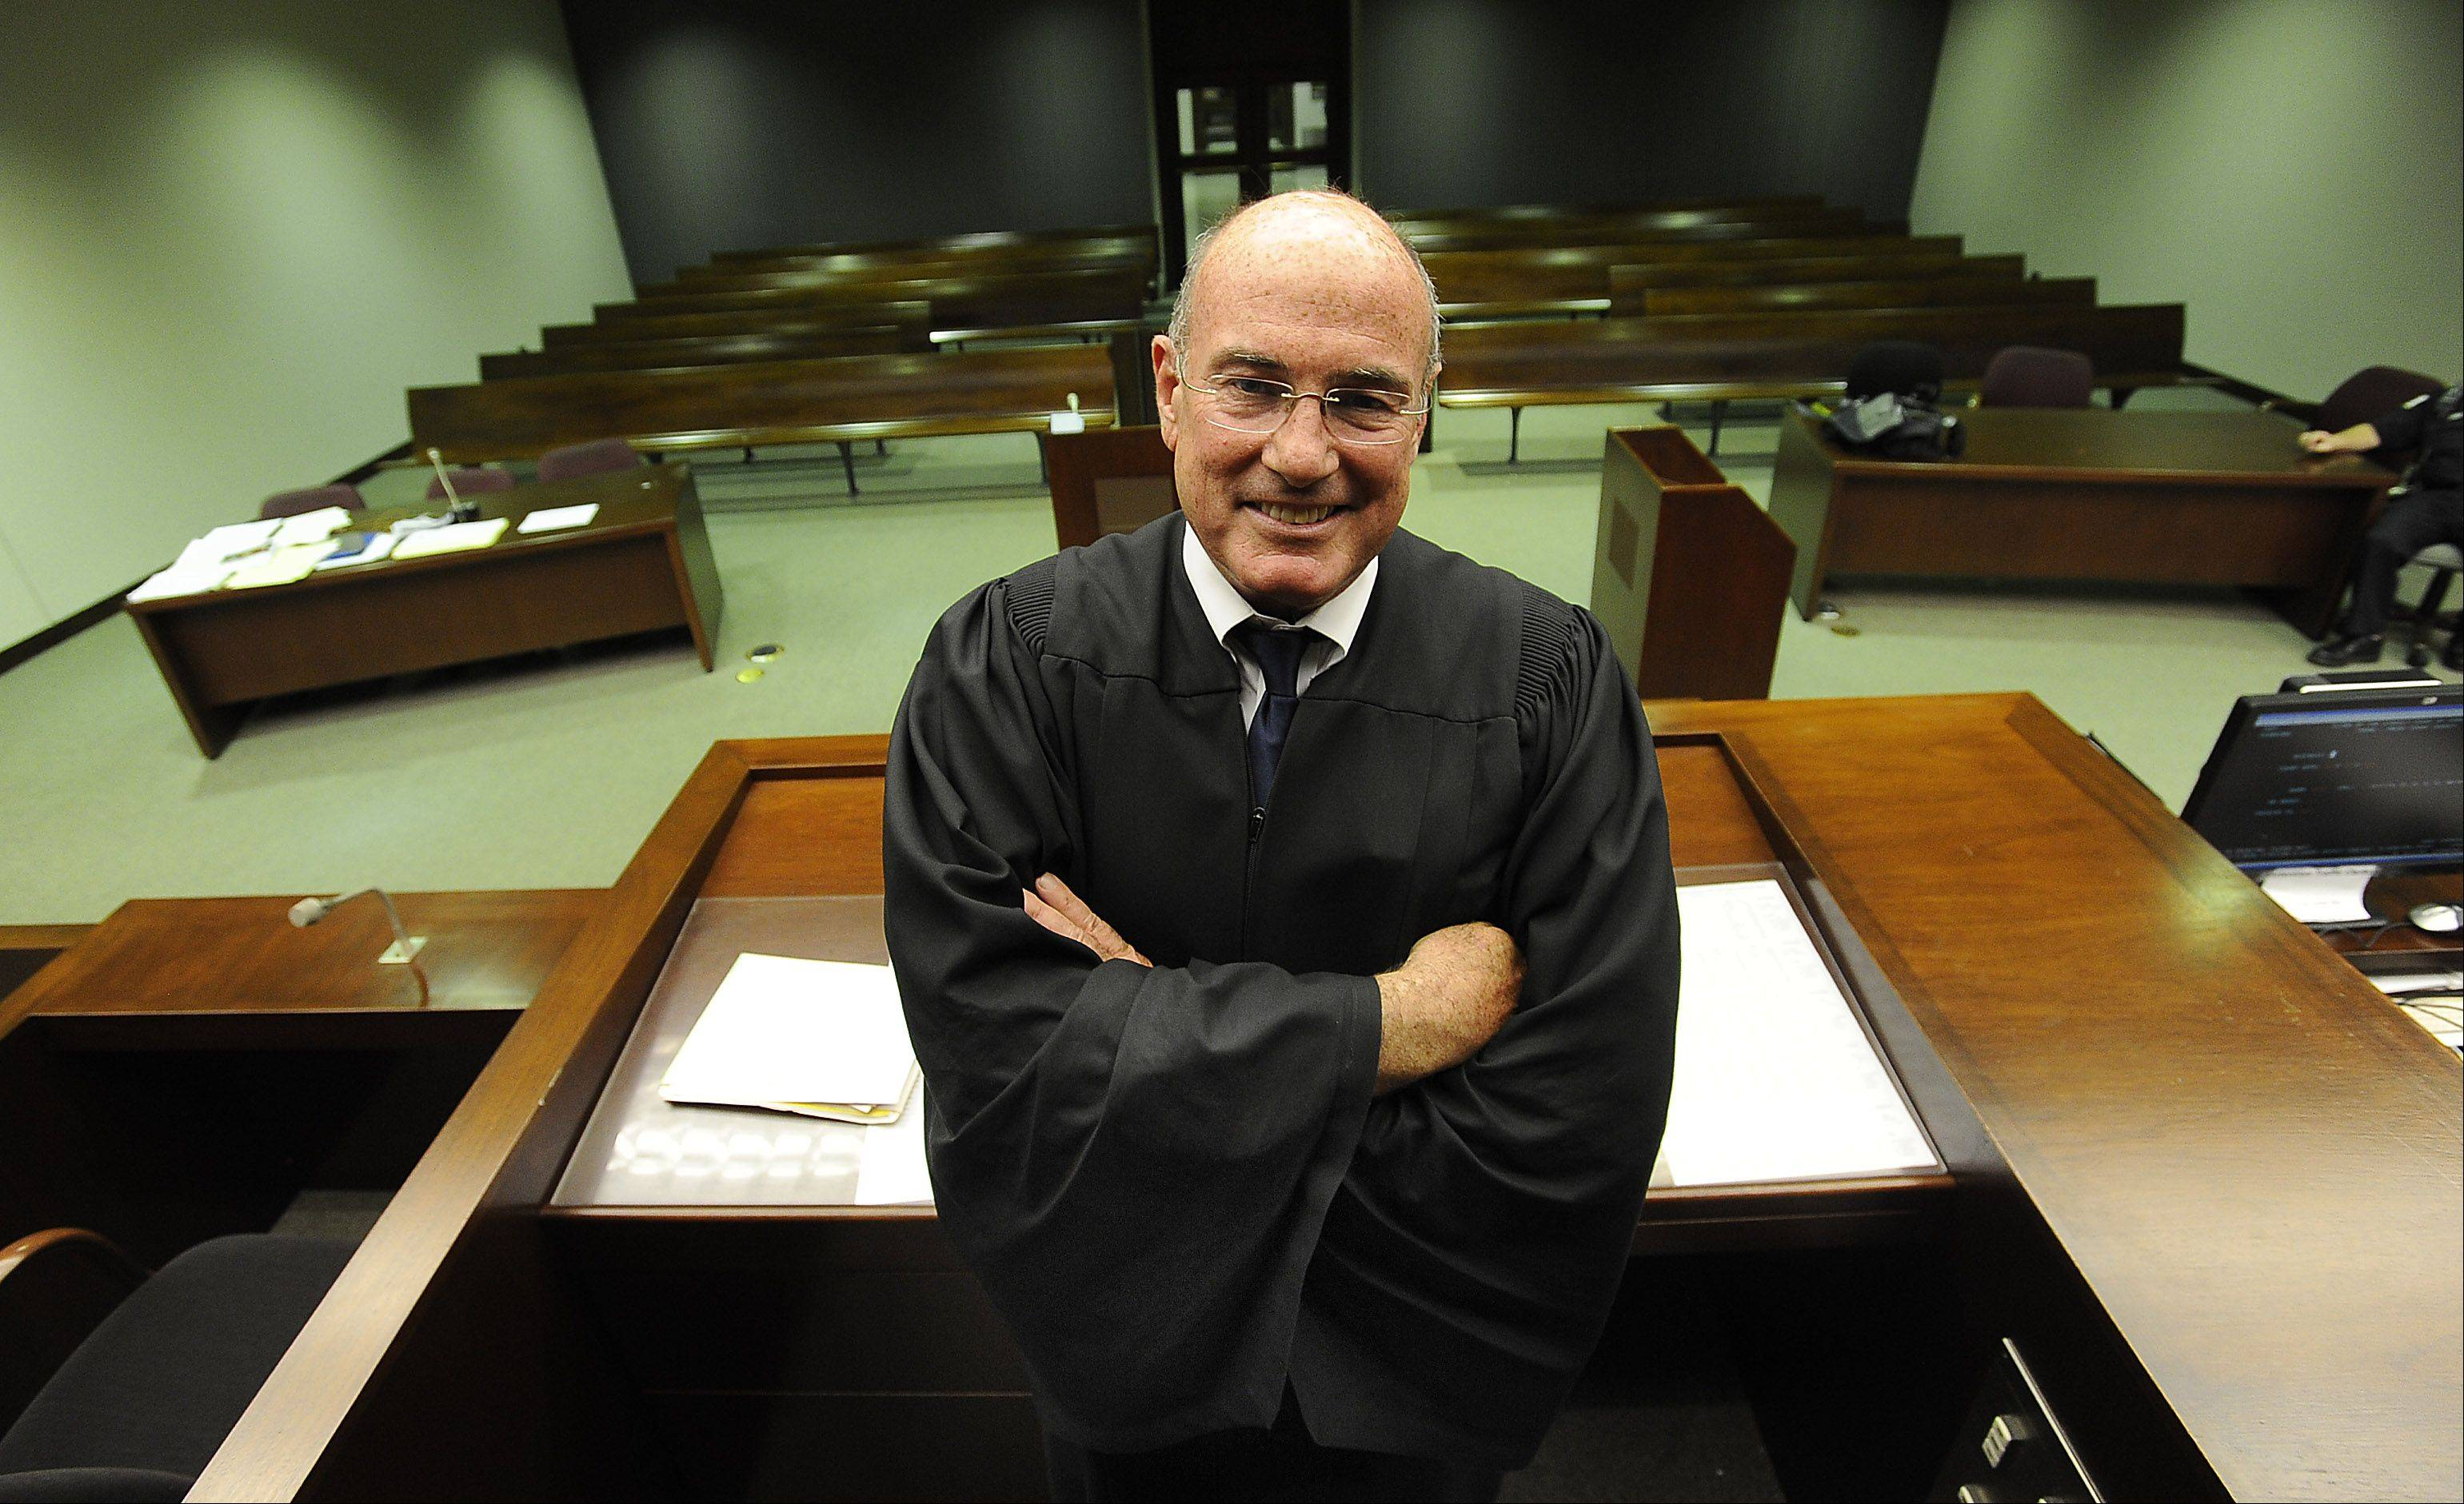 Elegant Associate Cook County Judge James P. Etchingham Retired Monday After Nearly  18 Years On The